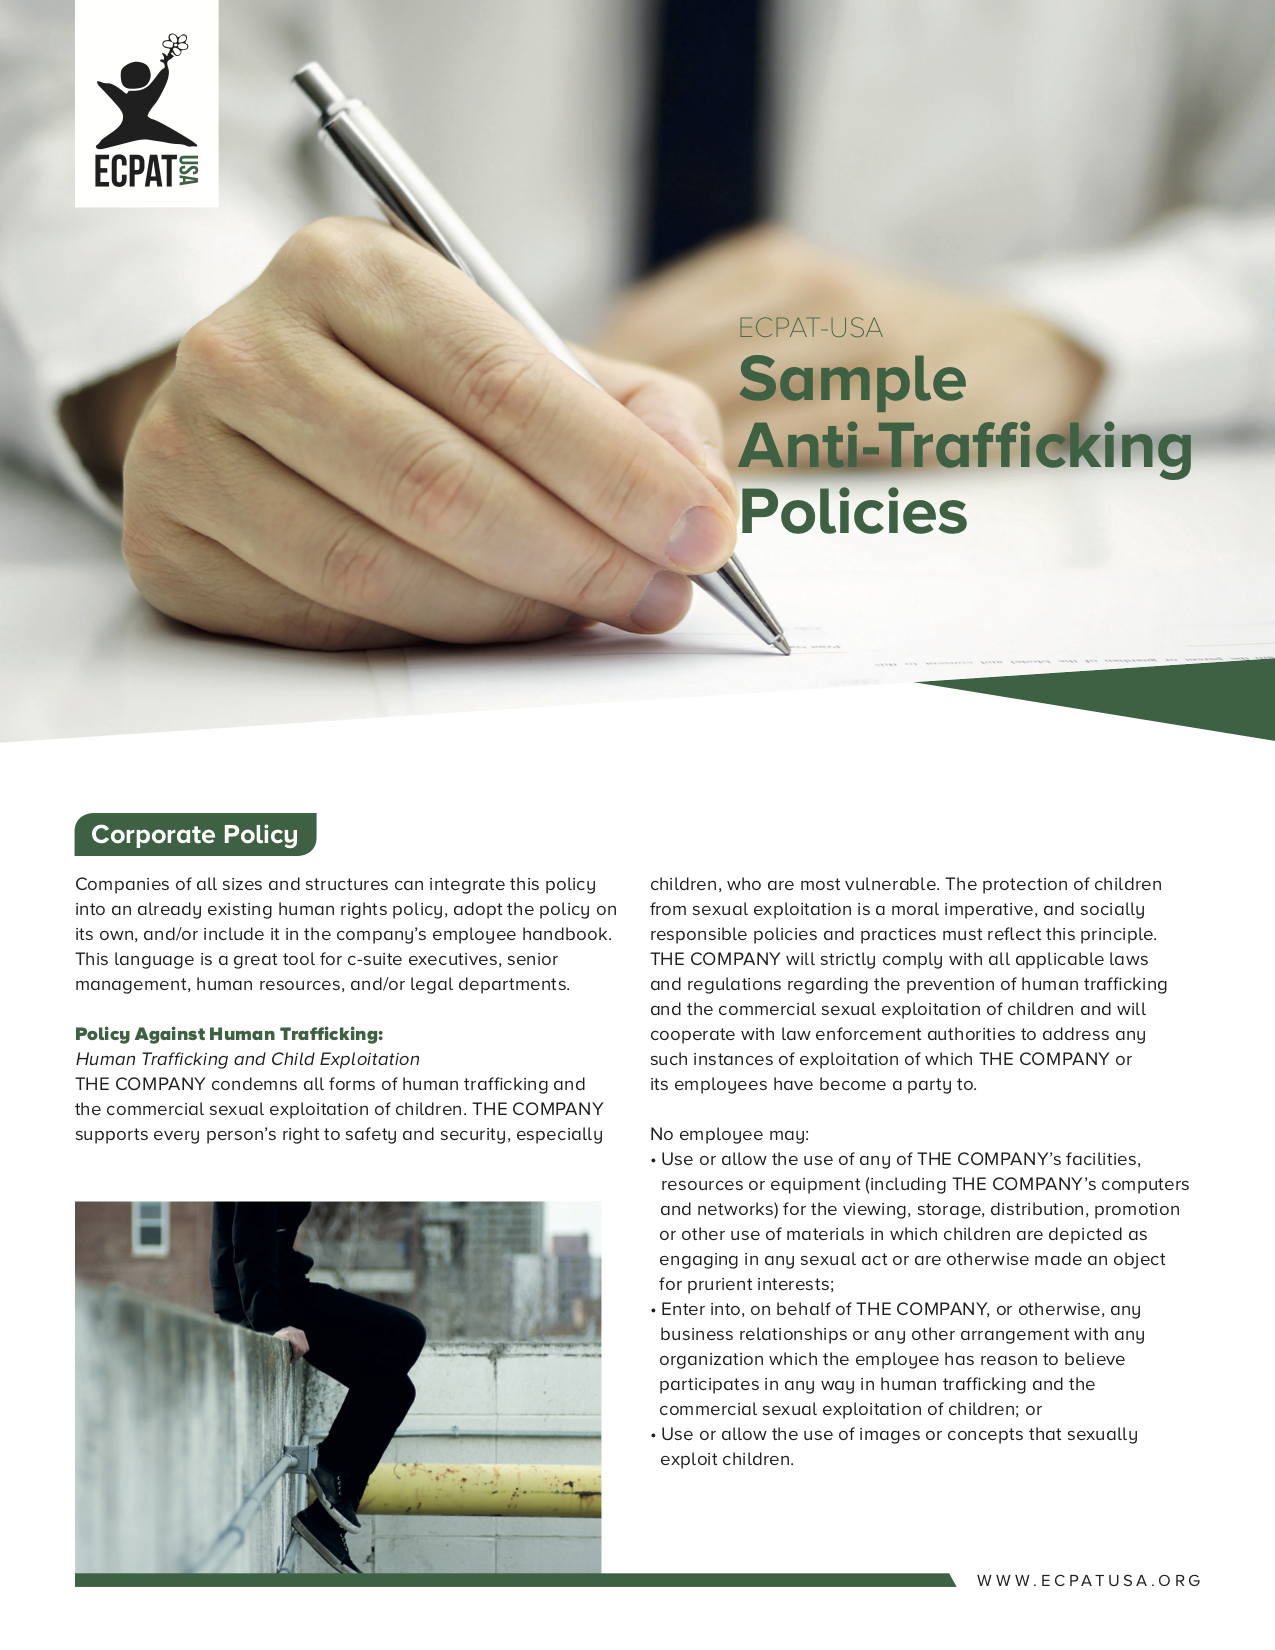 Corporate Anti-Trafficking Policy, RFP Language, and Contract language (EN, FR, SP, PT)